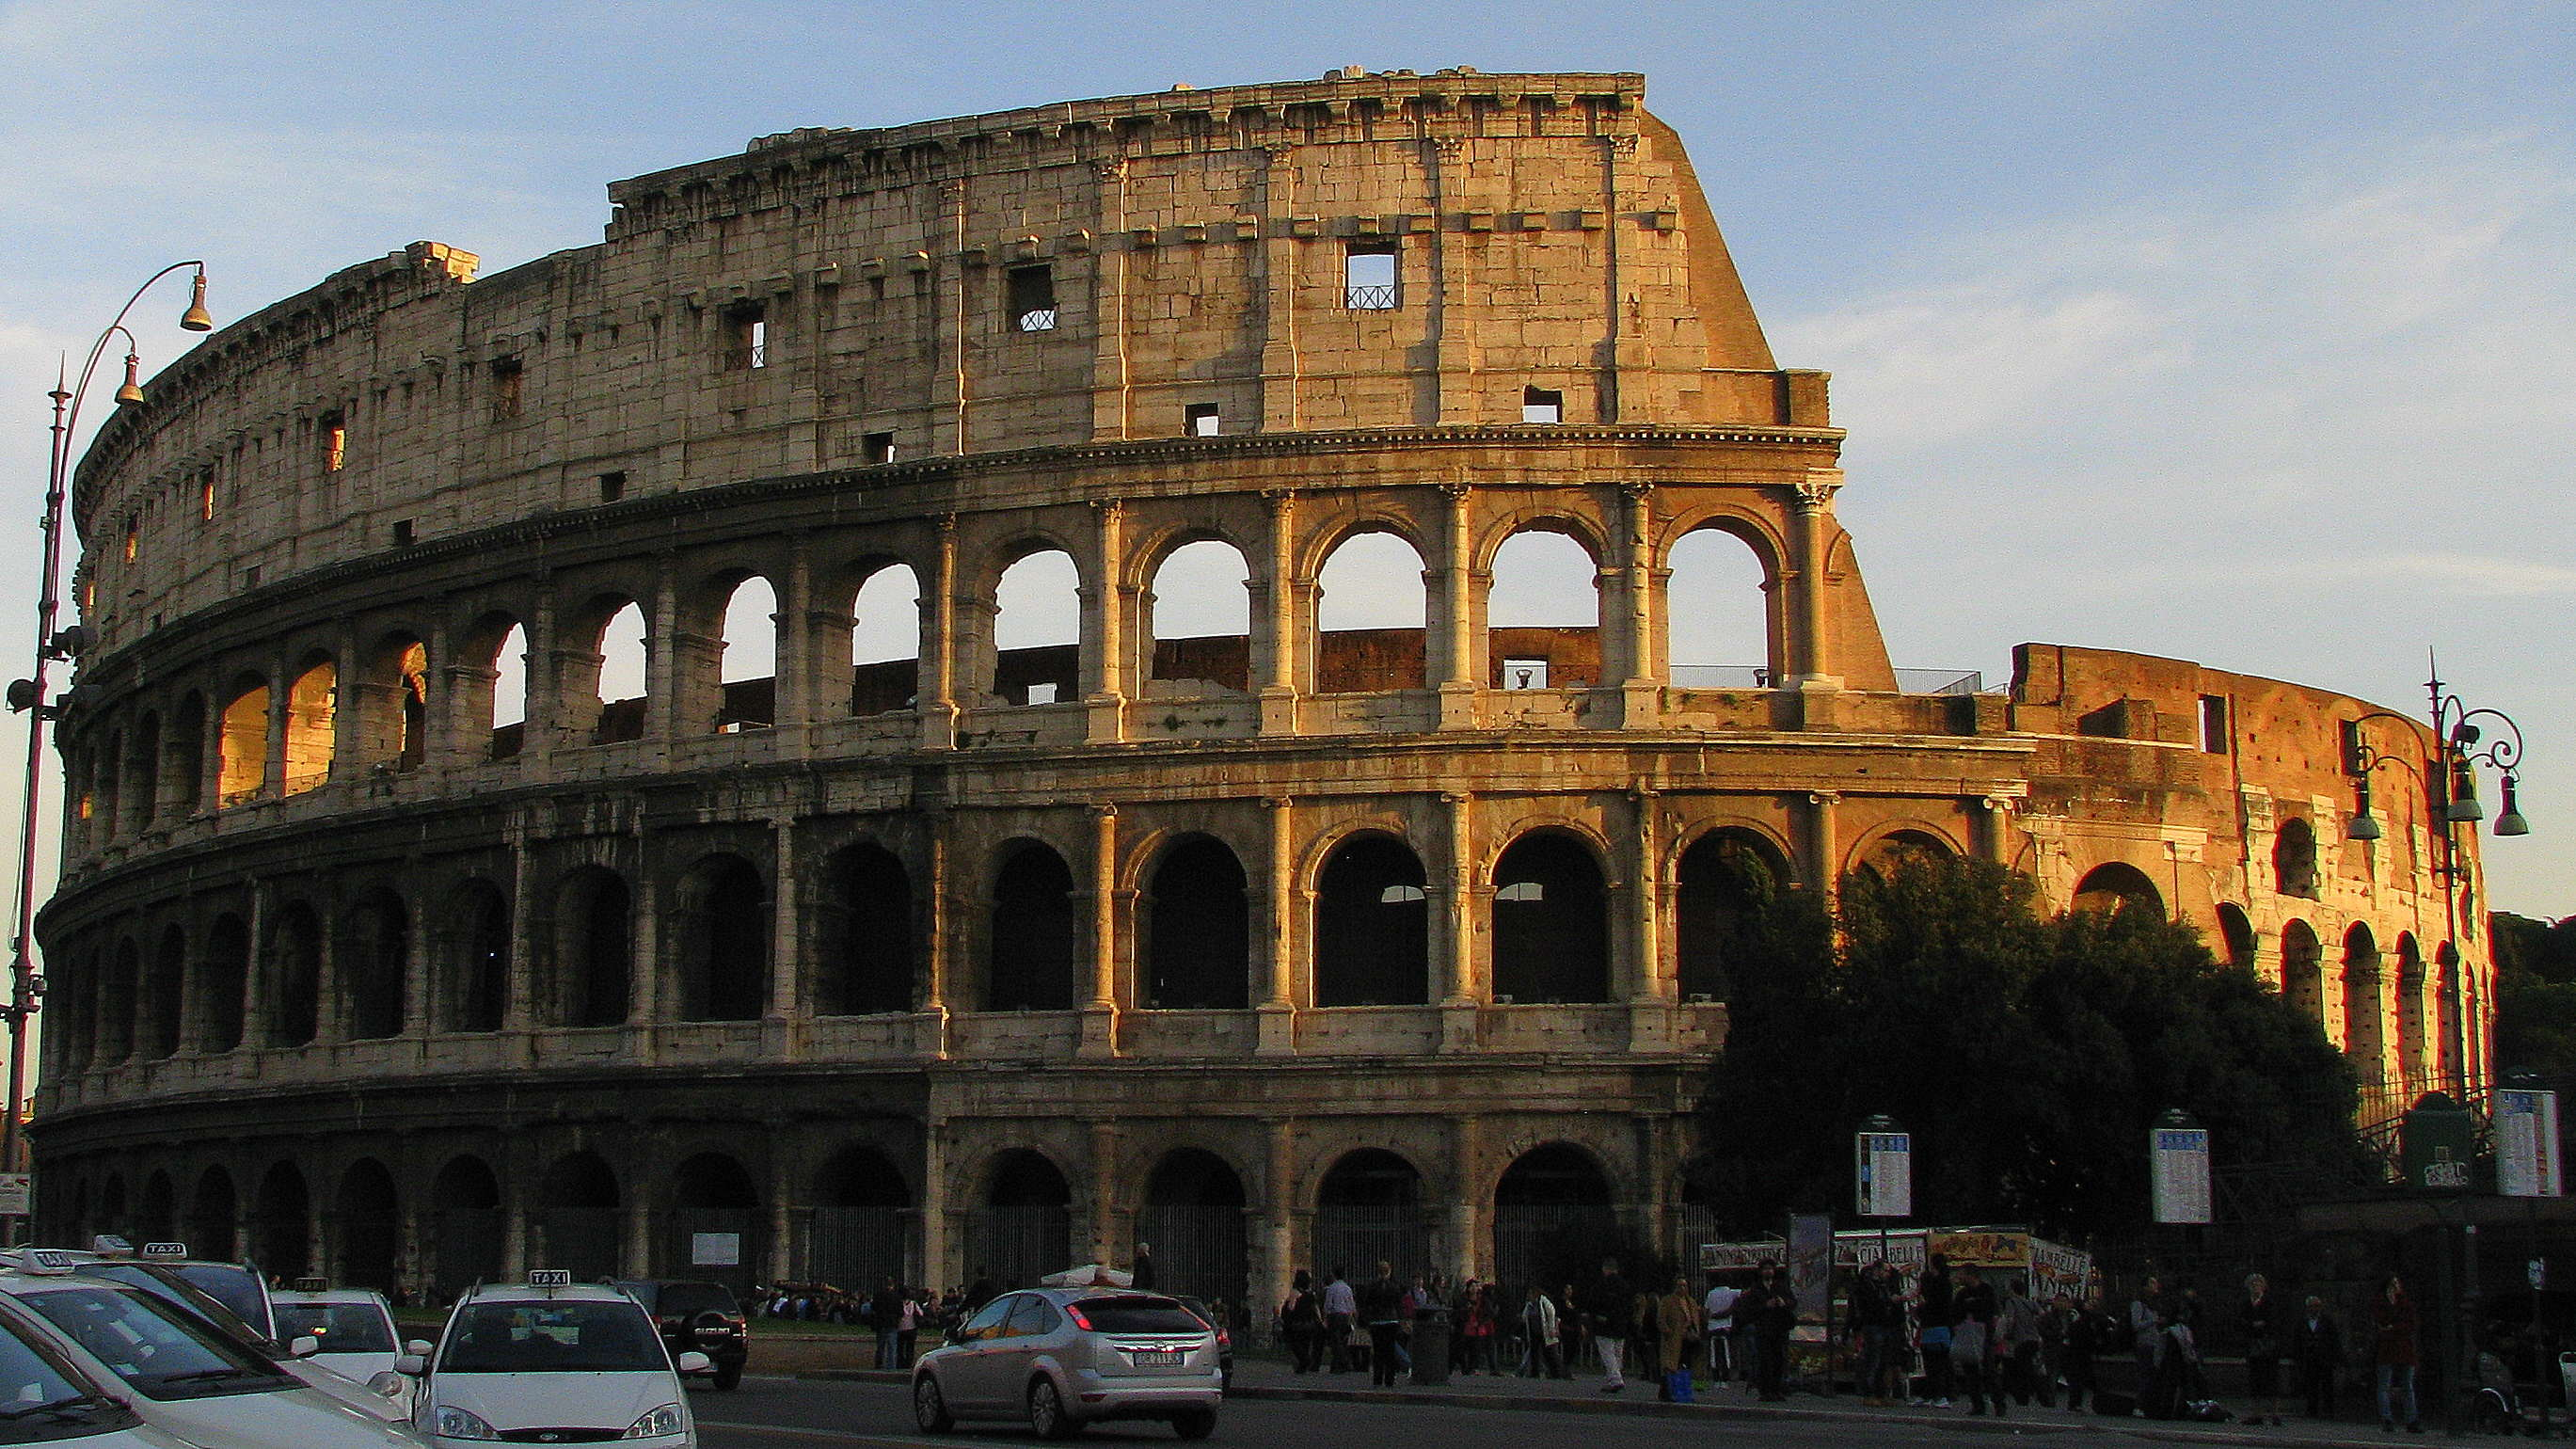 This Is How America Wishes It Was More Like Europe The Colosseum